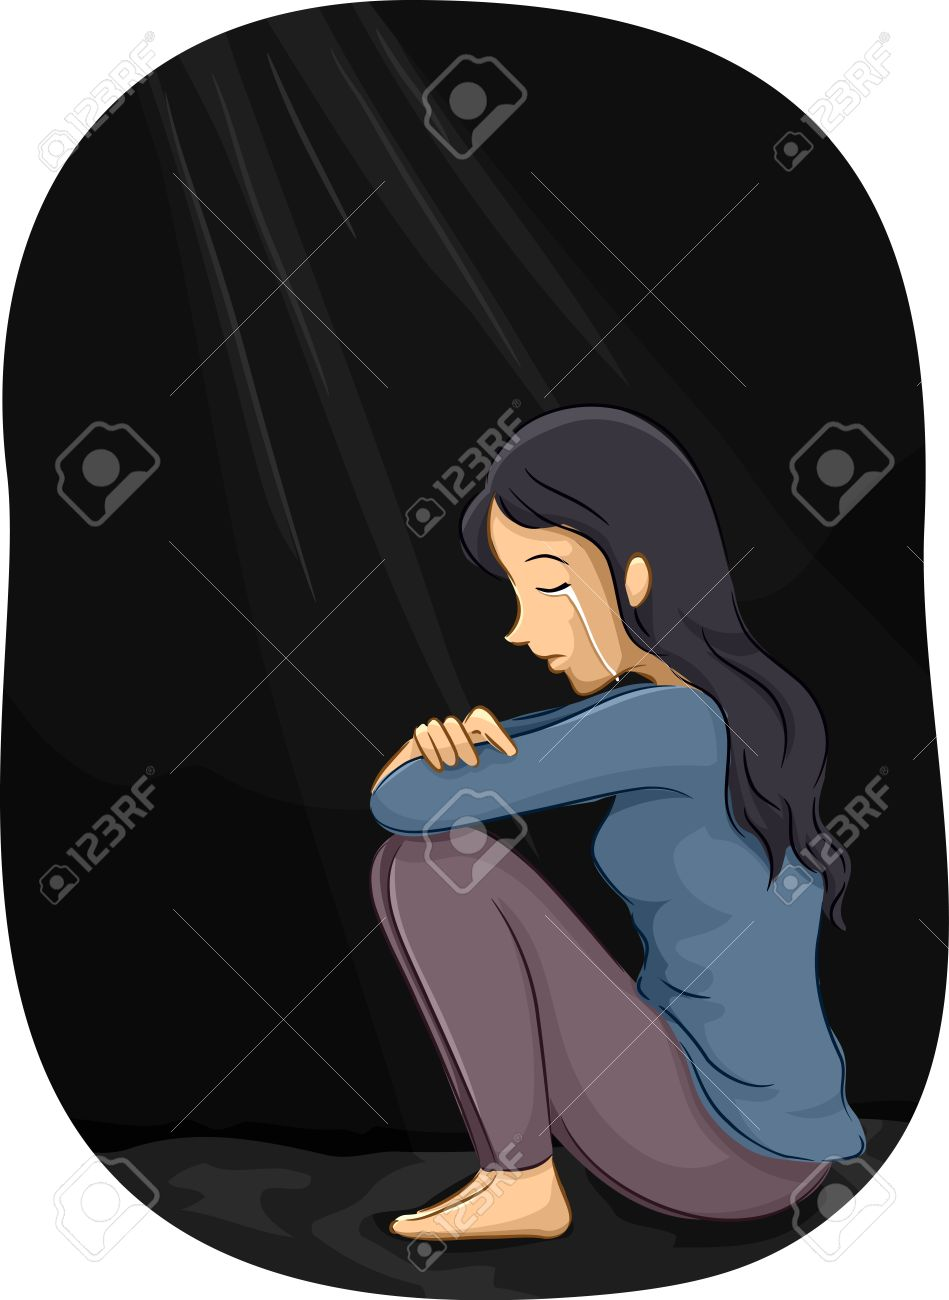 Illustration of a depressed girl crying in a corner stock illustration 55880241